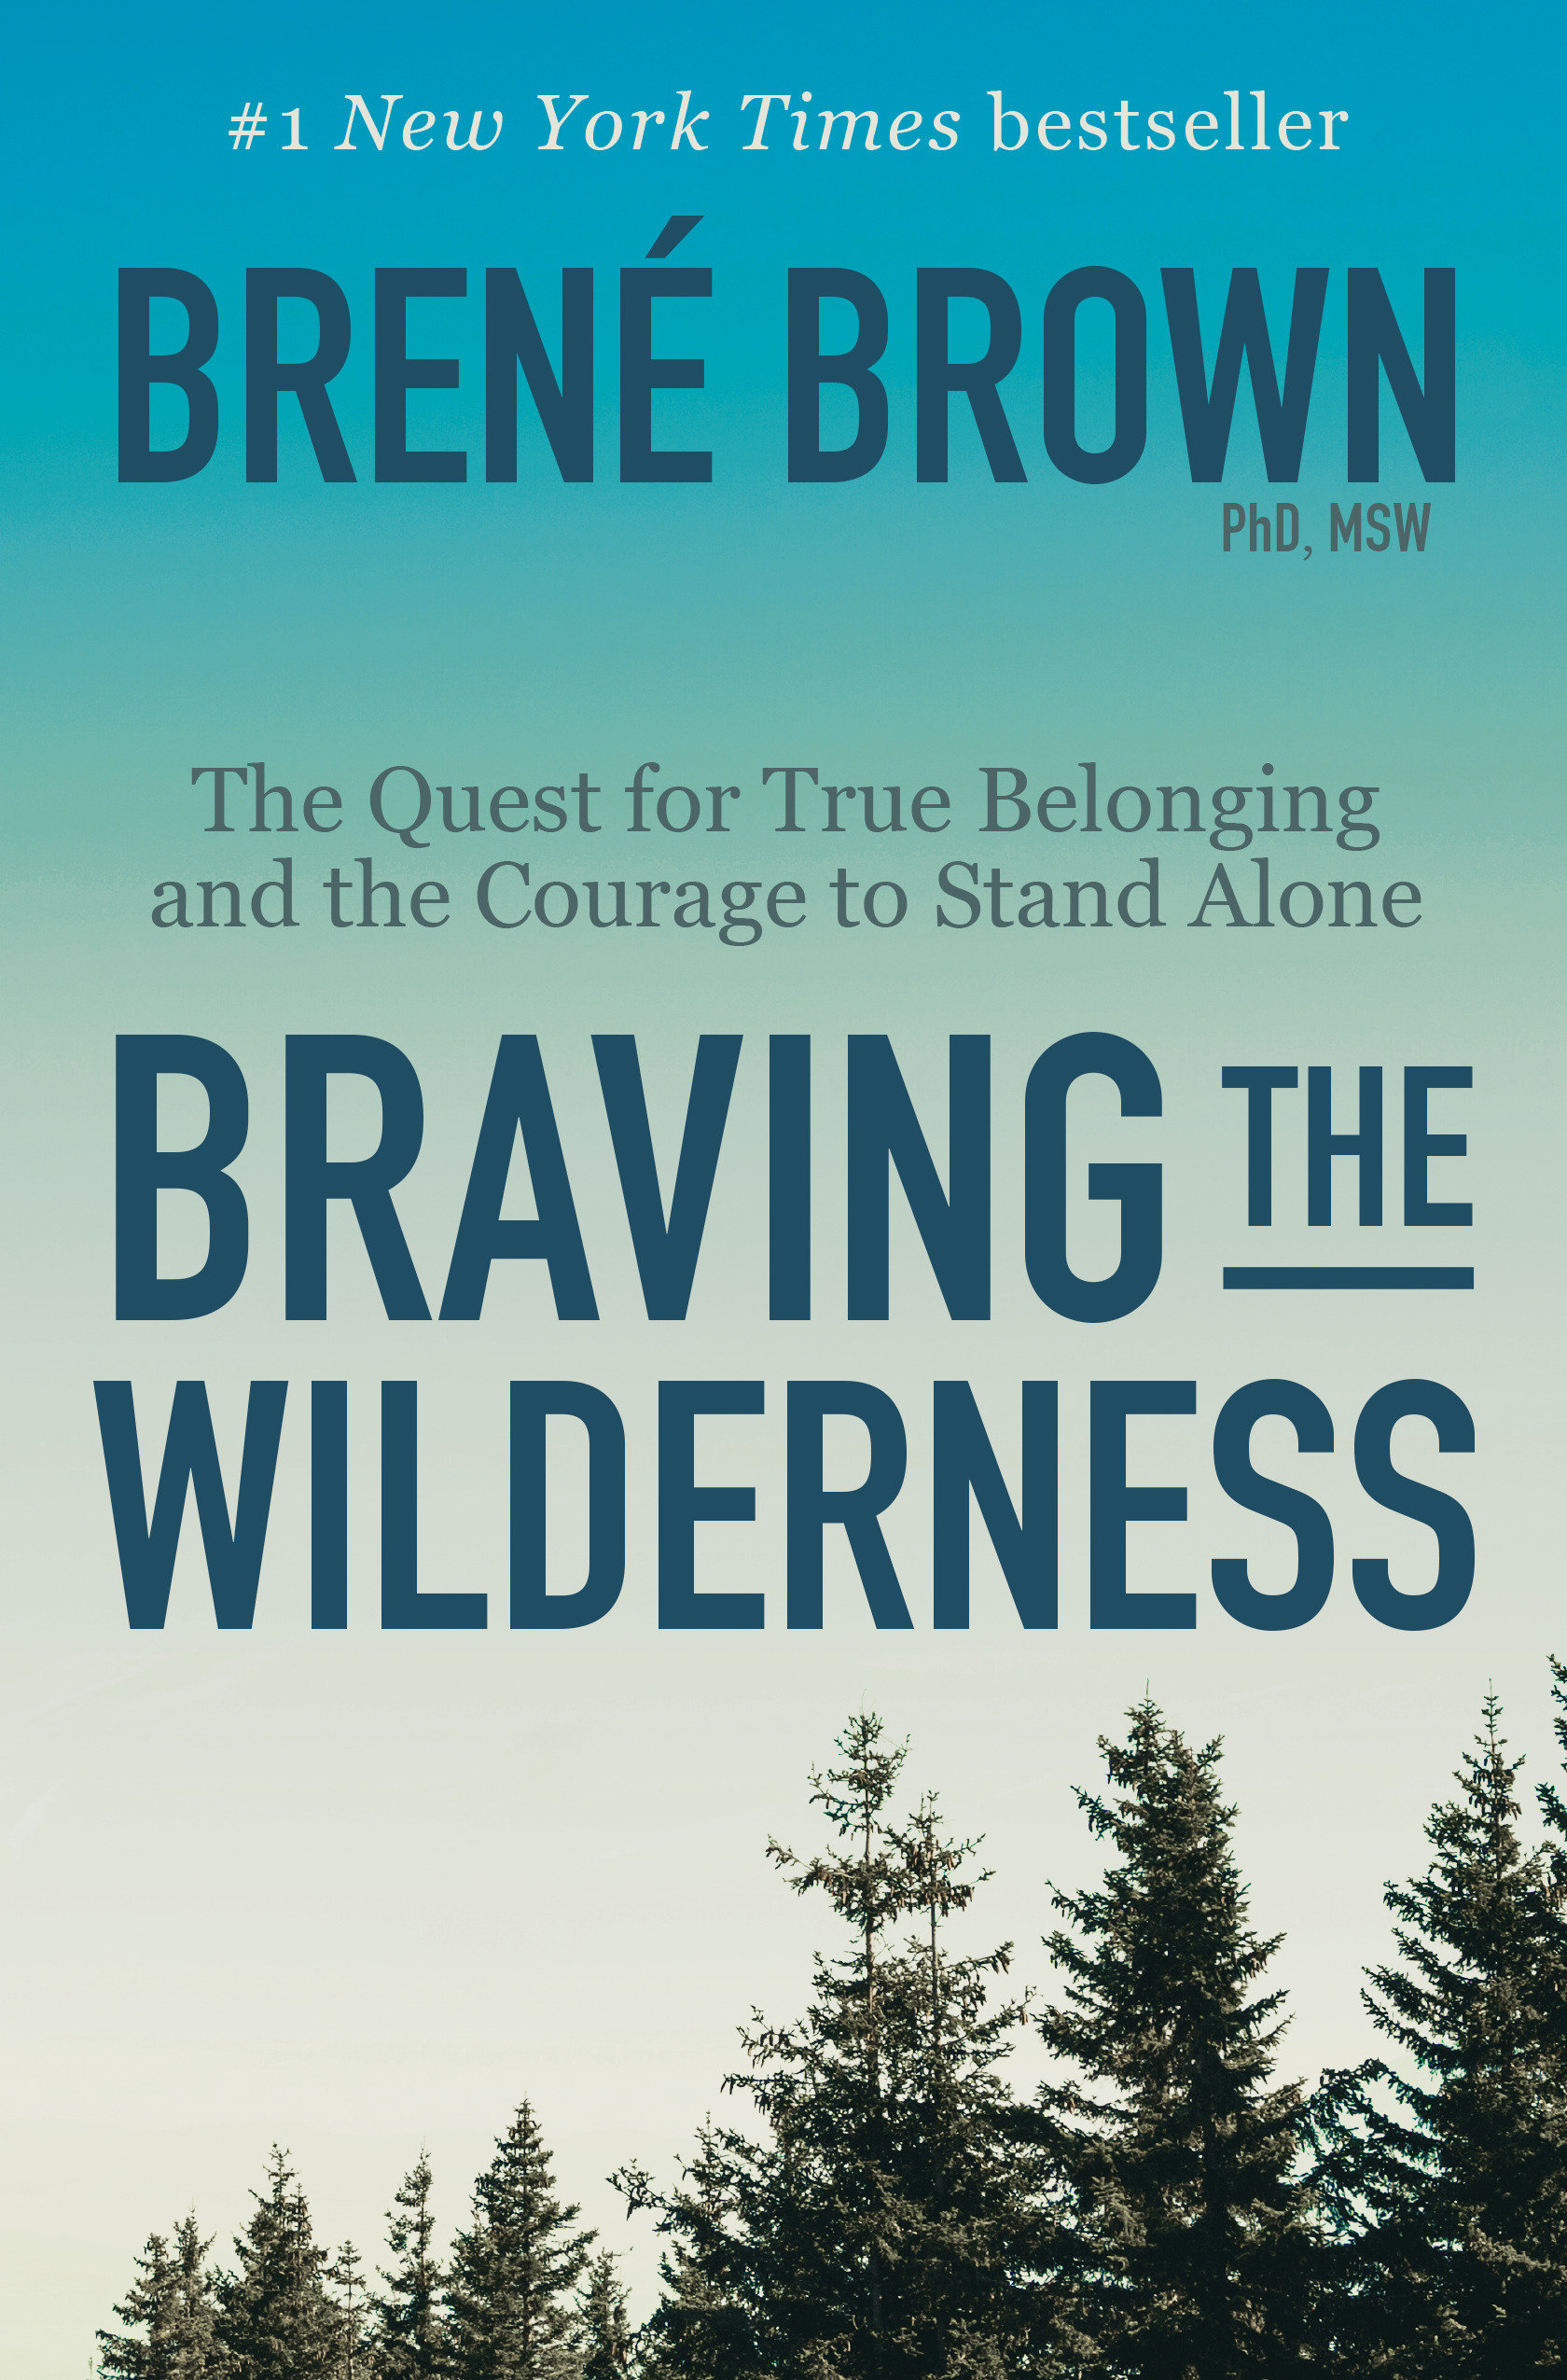 Braving the Wilderness [electronic resource] : The Quest for True Belonging and the Courage to Stand Alone